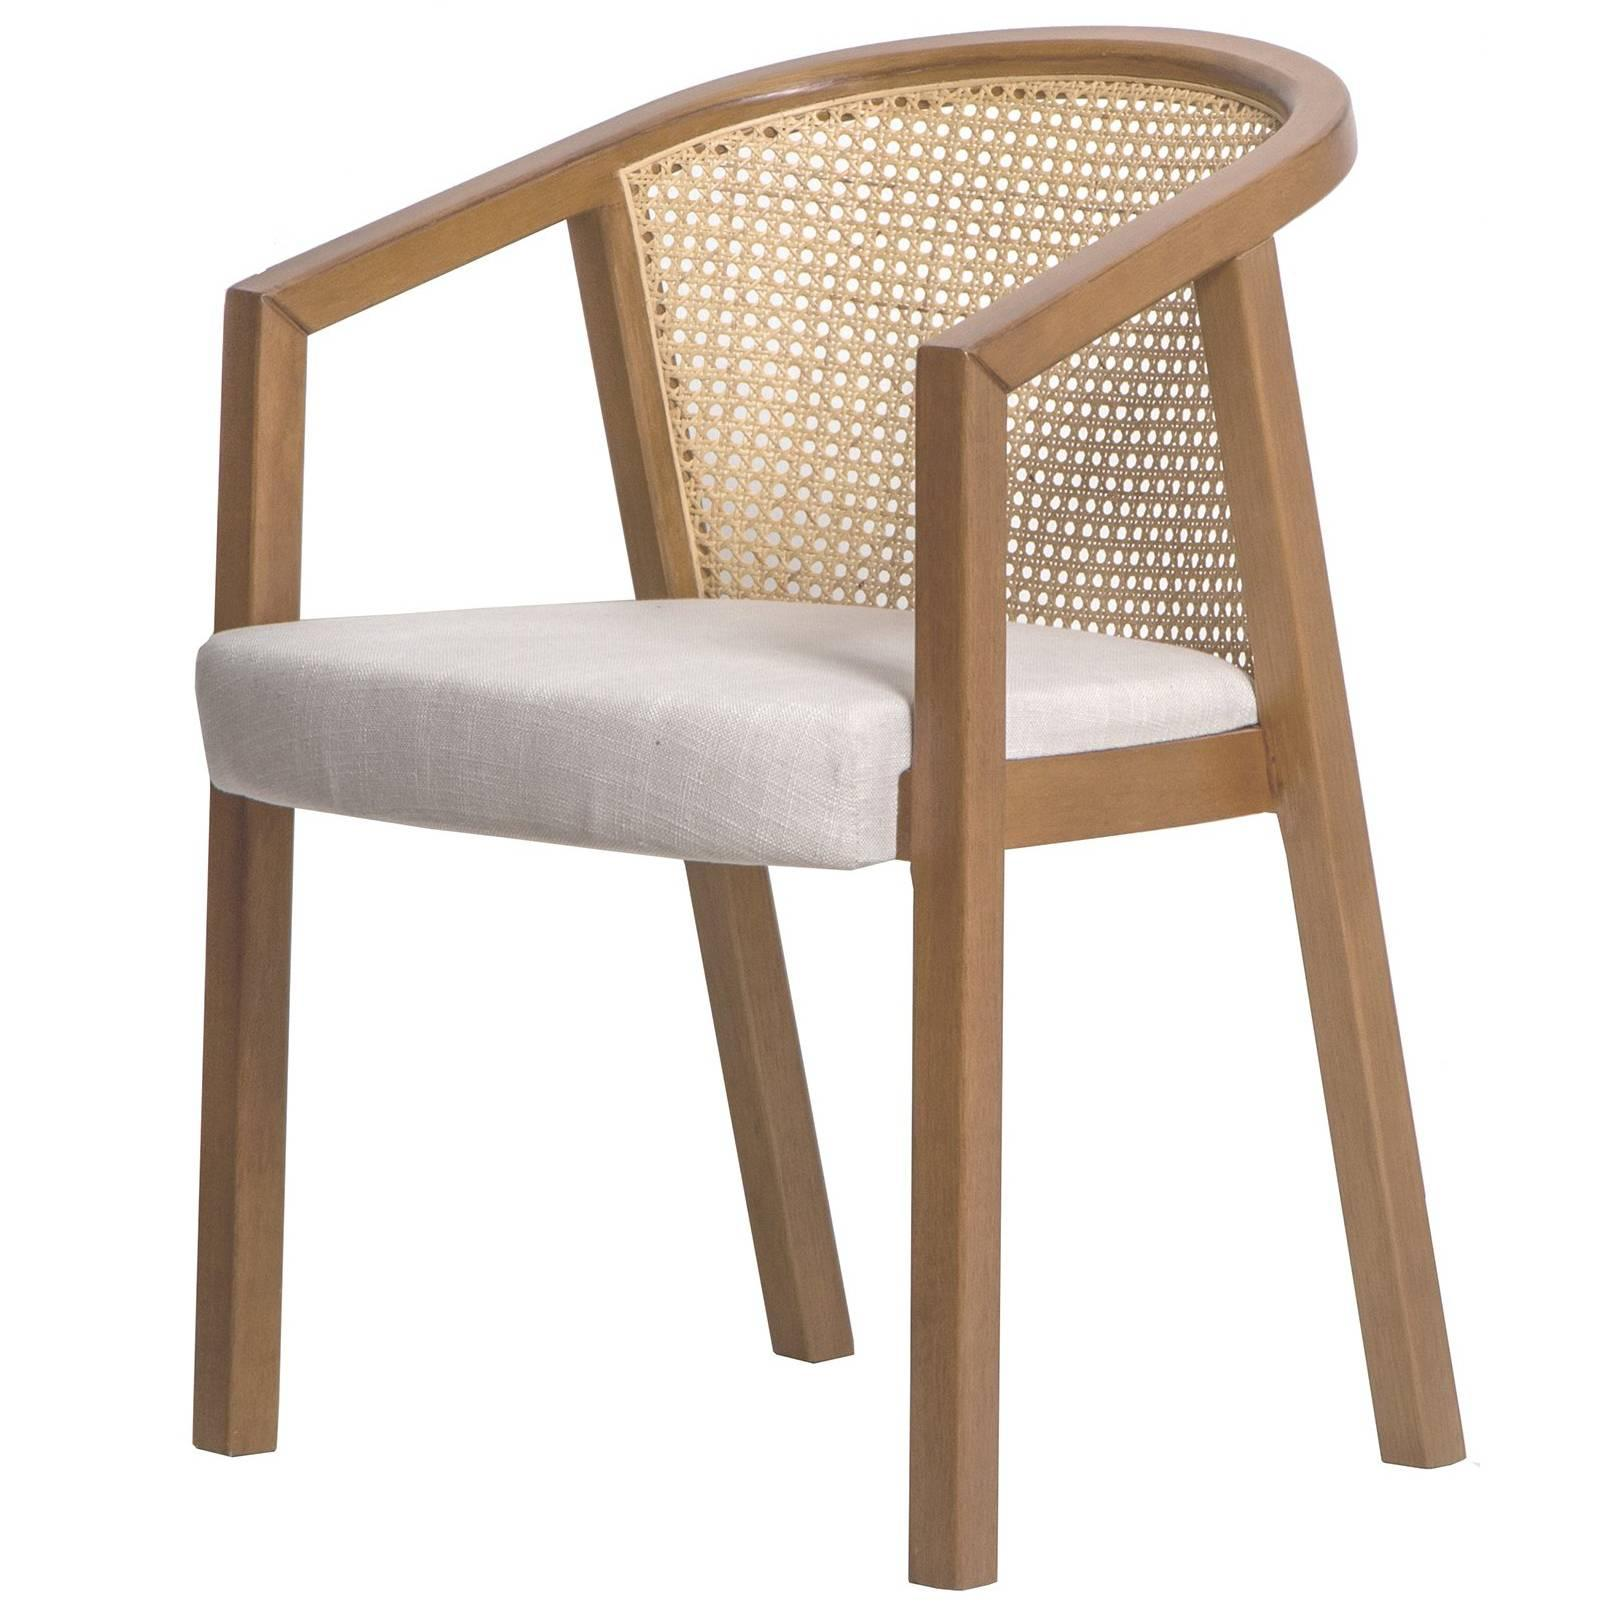 Beau Gradeada Brazilian Contemporary Wood And Straw Chair By Lattoog For Sale